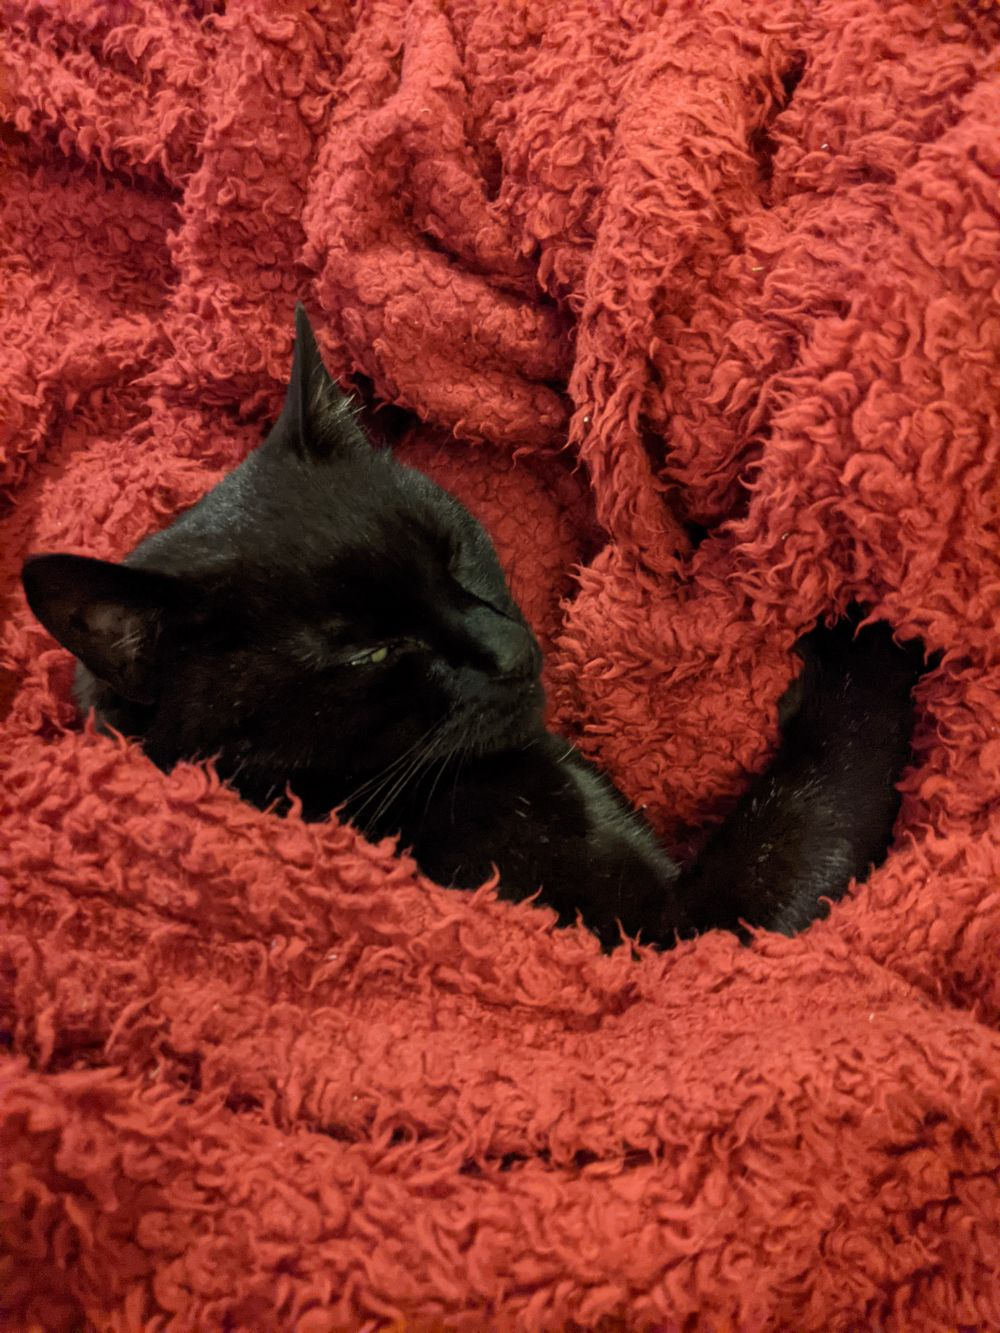 Black cat lying on a red blanket, which is all wrapped around him, looking up at the camera a little sleepily